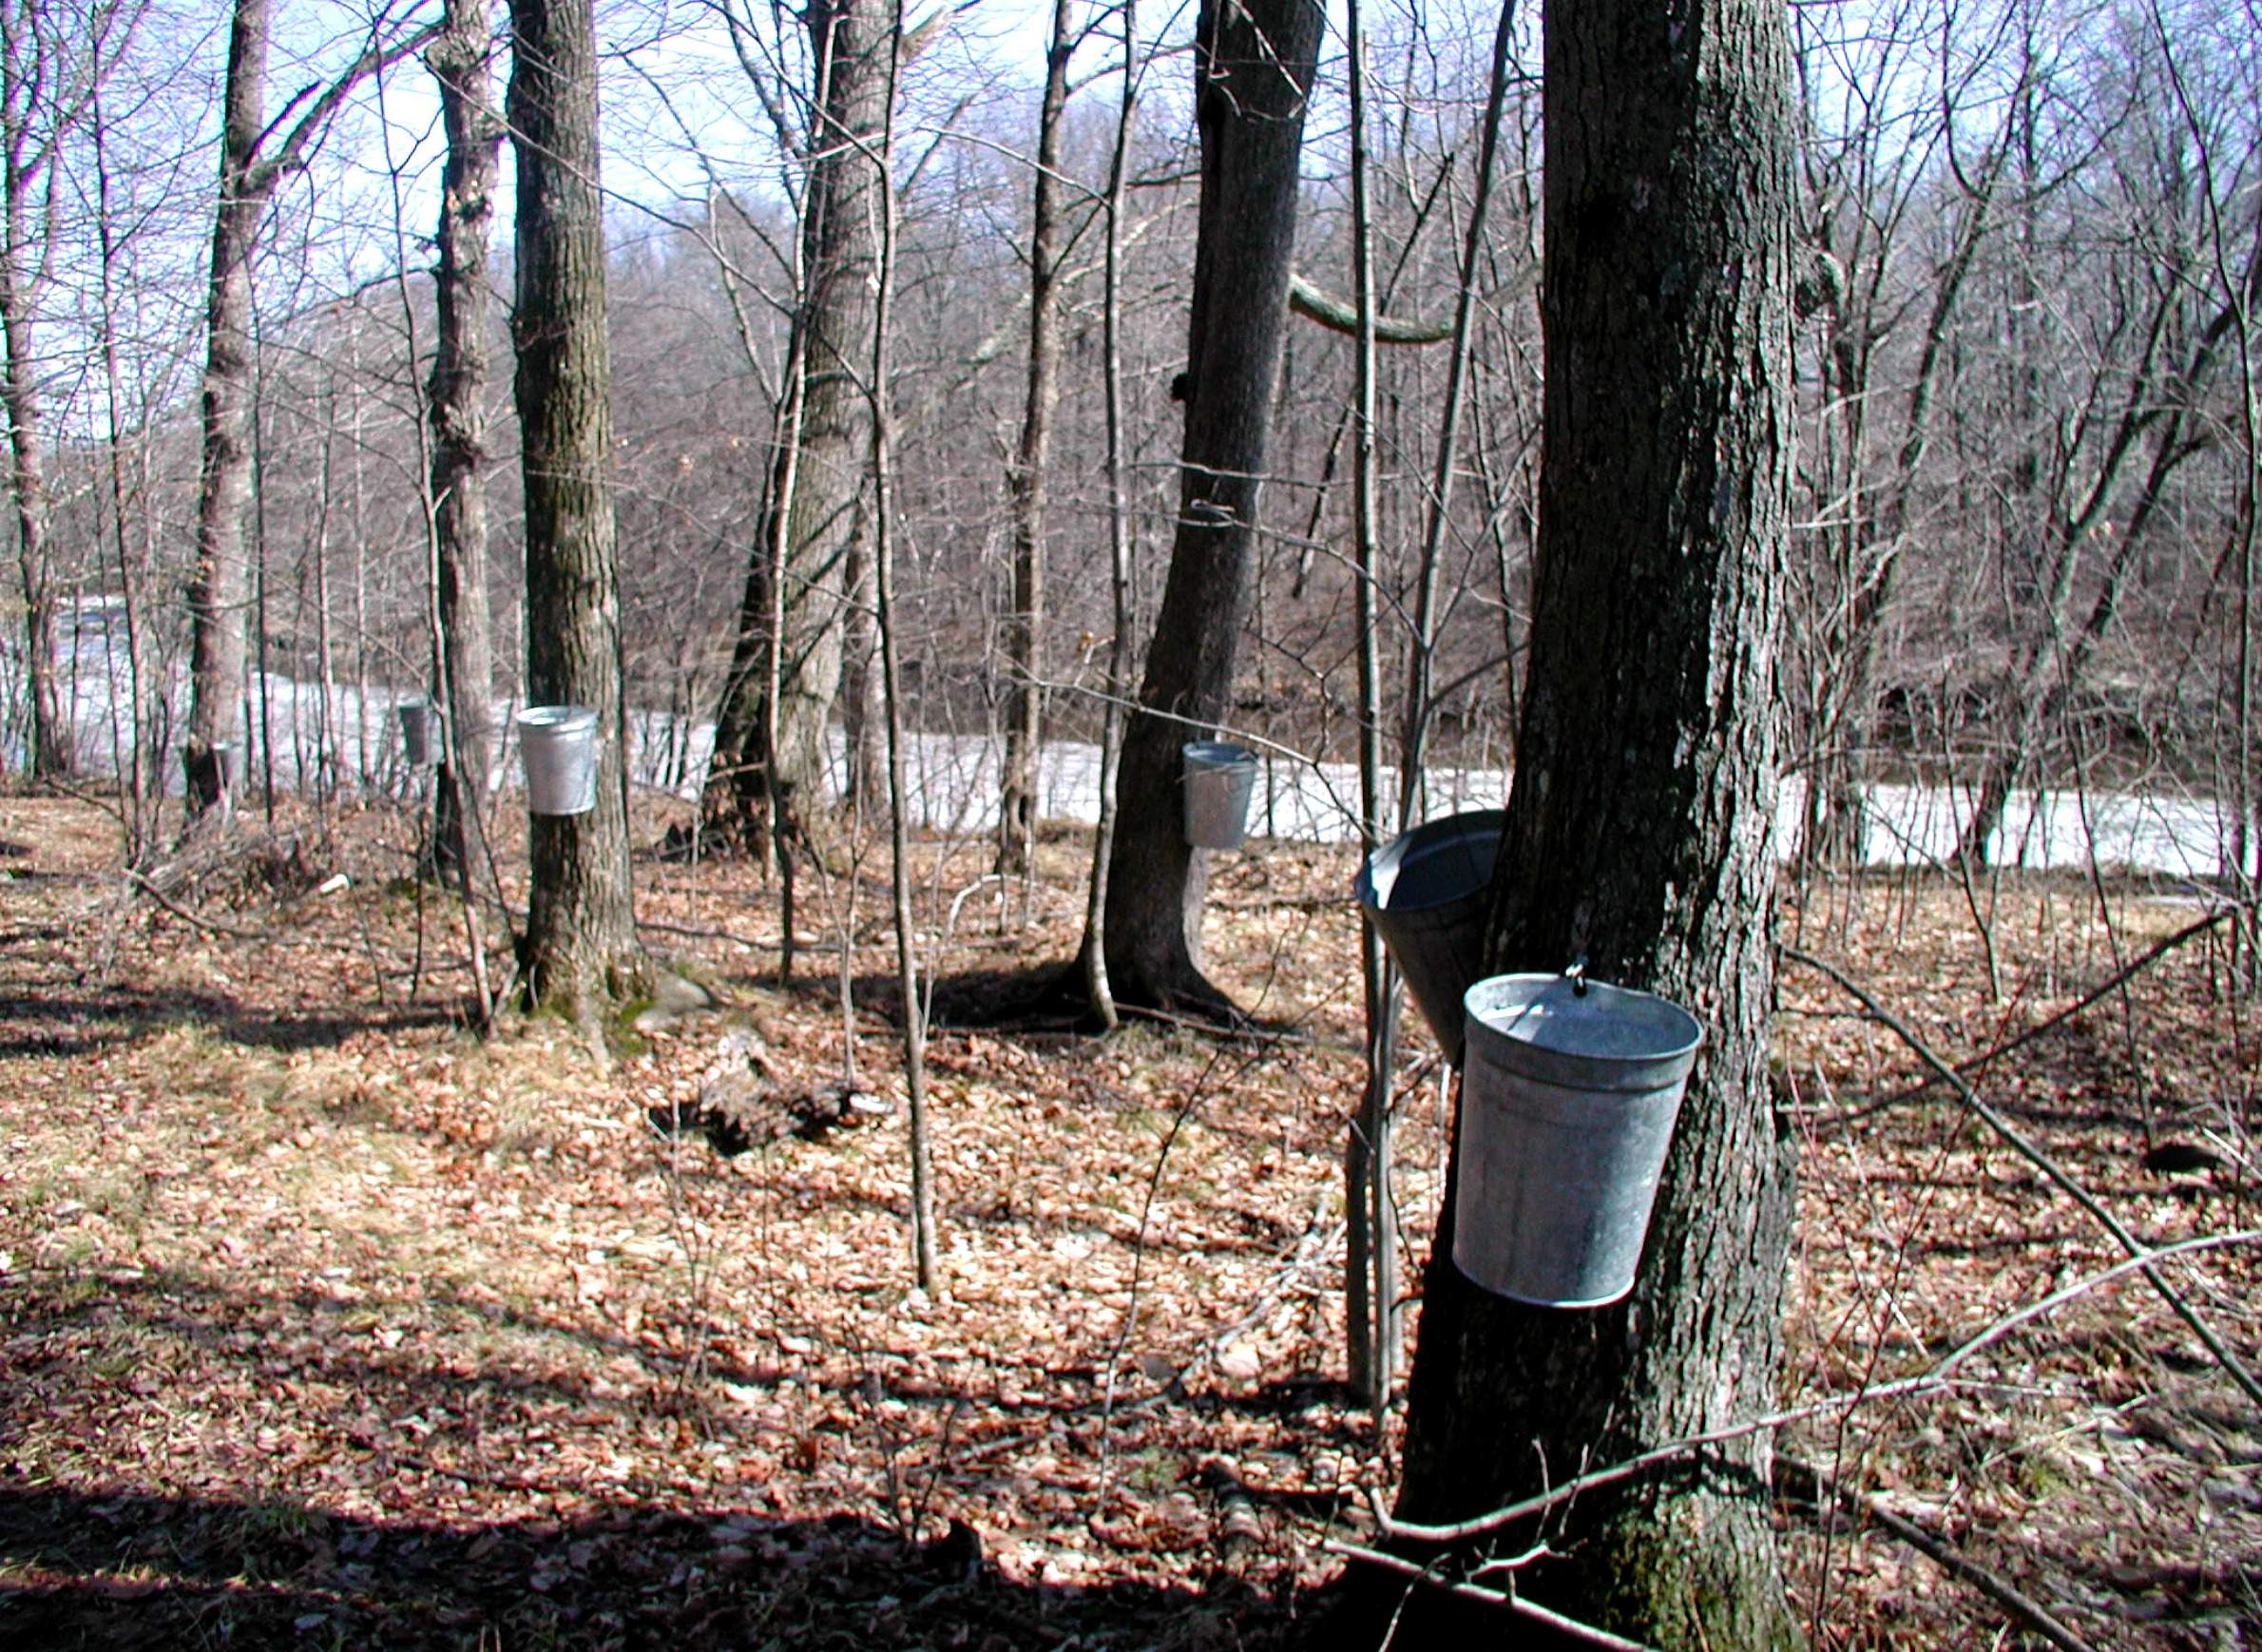 Maple syrup harvest in Wisconsin